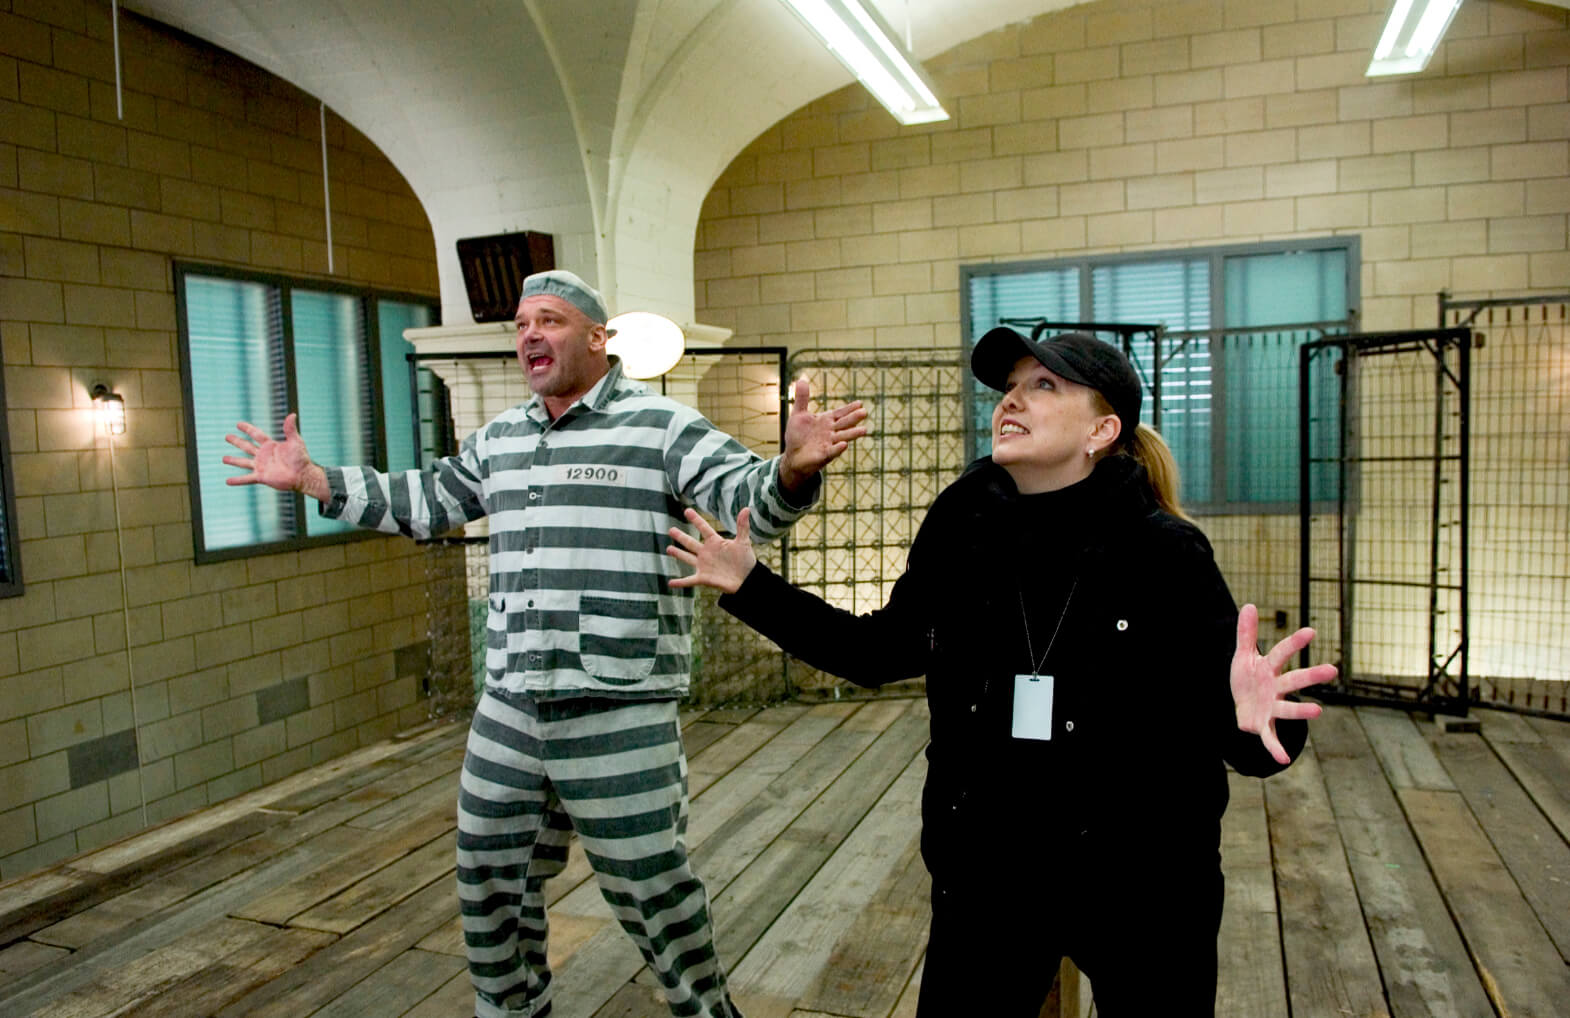 """Susan Stroman and jailbird Brian Rogalski rehearsing """"Prisoners of Love"""". Stro is directing Brian on how to deliver the song. Brian is dressed in a jail striped uniform."""